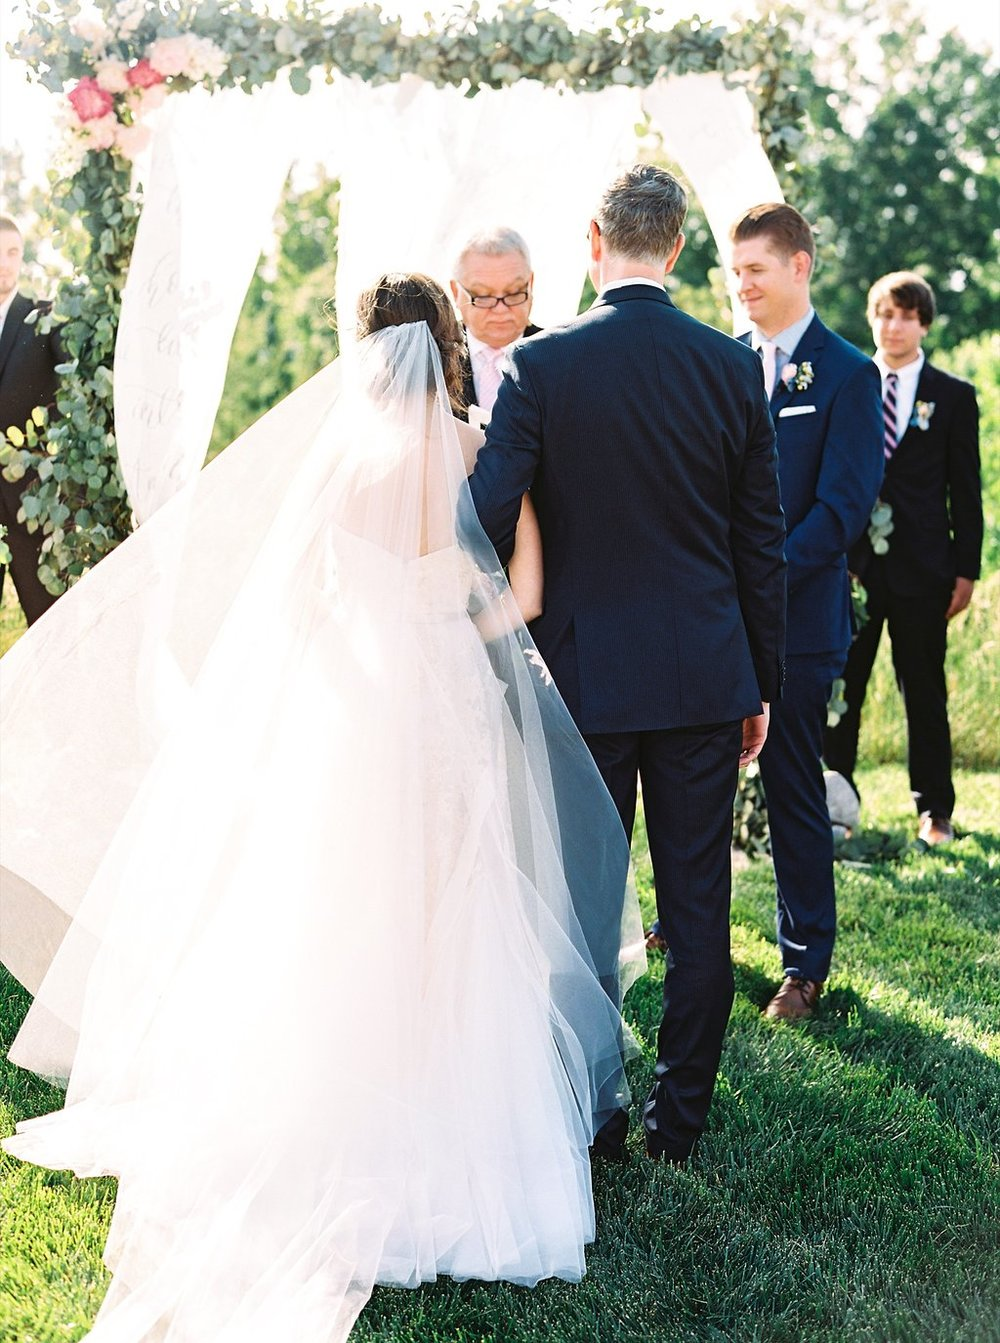 Father Giving Away Bride at an Outdoor Southern Wedding Ceremony | Blush and Navy Wedding with Fuchsia, French Blue and Gold Accents | Simply Jessica Marie's Southern Wedding at Gettysvue Golf Course and Country Club in Knoxville Tennessee | Photo by Perry Vaile Photography